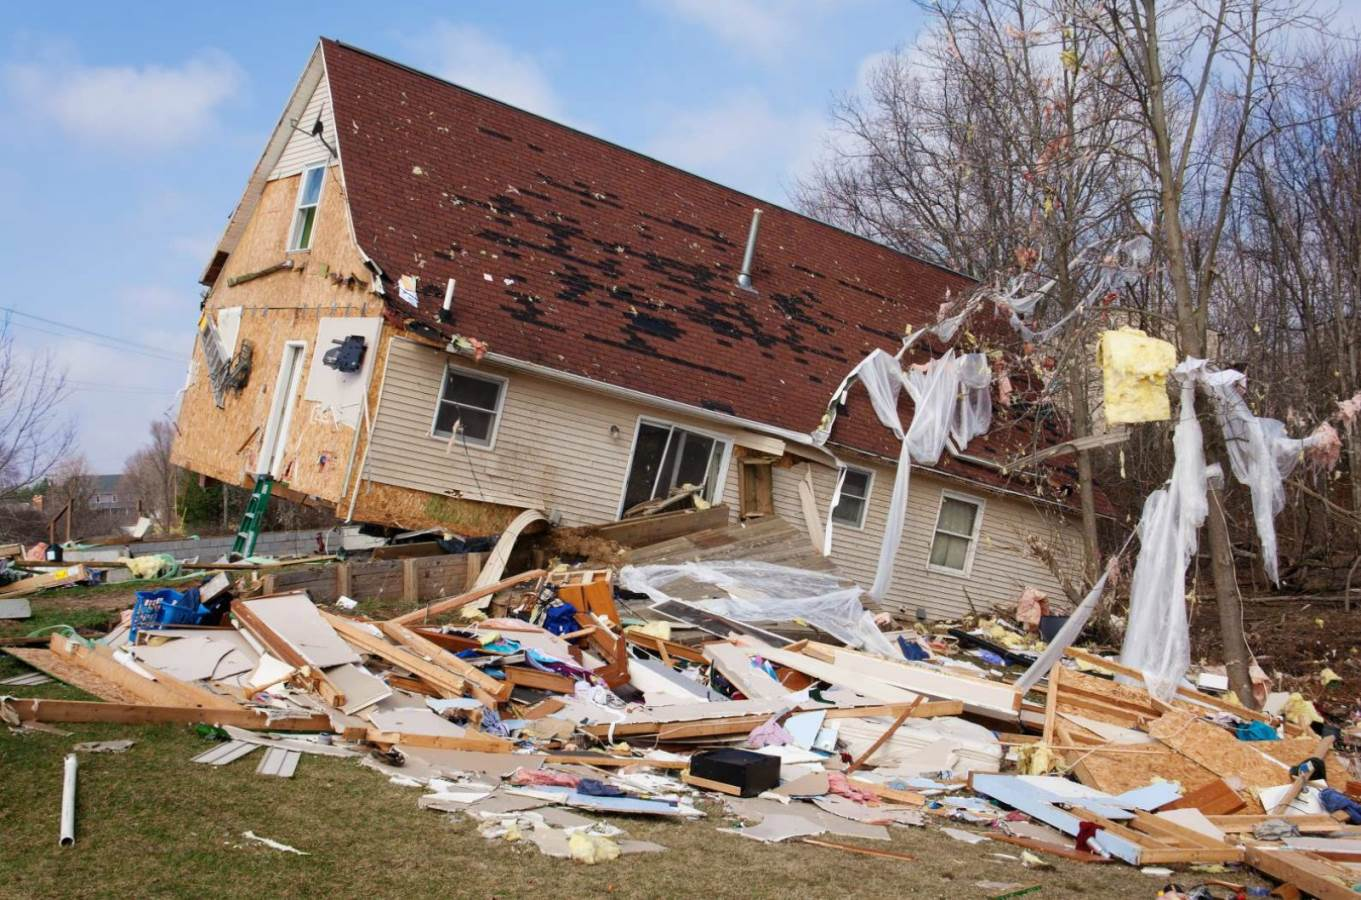 Web Site Provides Instant Access to Available Emergency Housing